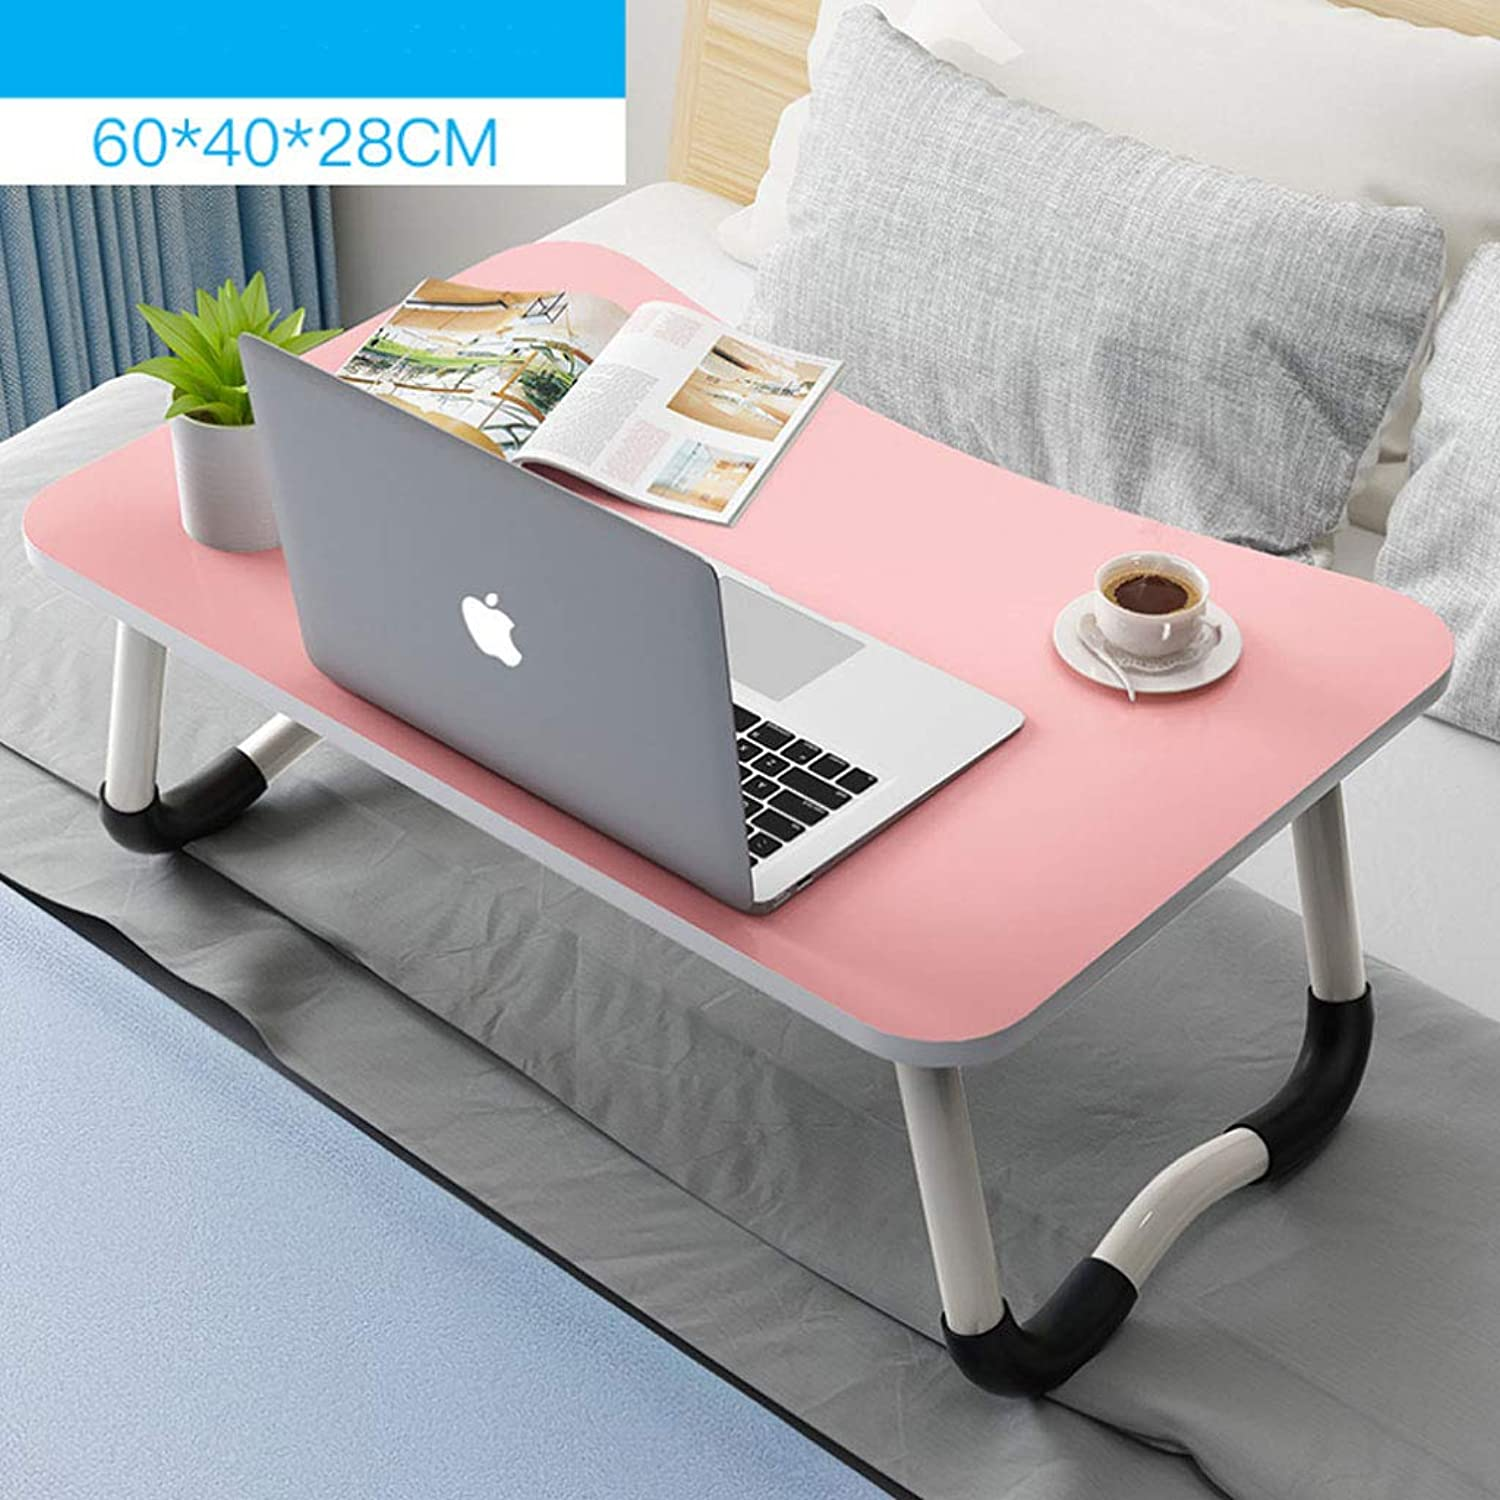 ZXW Folding Table Laptop Table Foldable Small Table Bed Desk Lazy Table Dormitory Bedroom Desk (color   Pink)